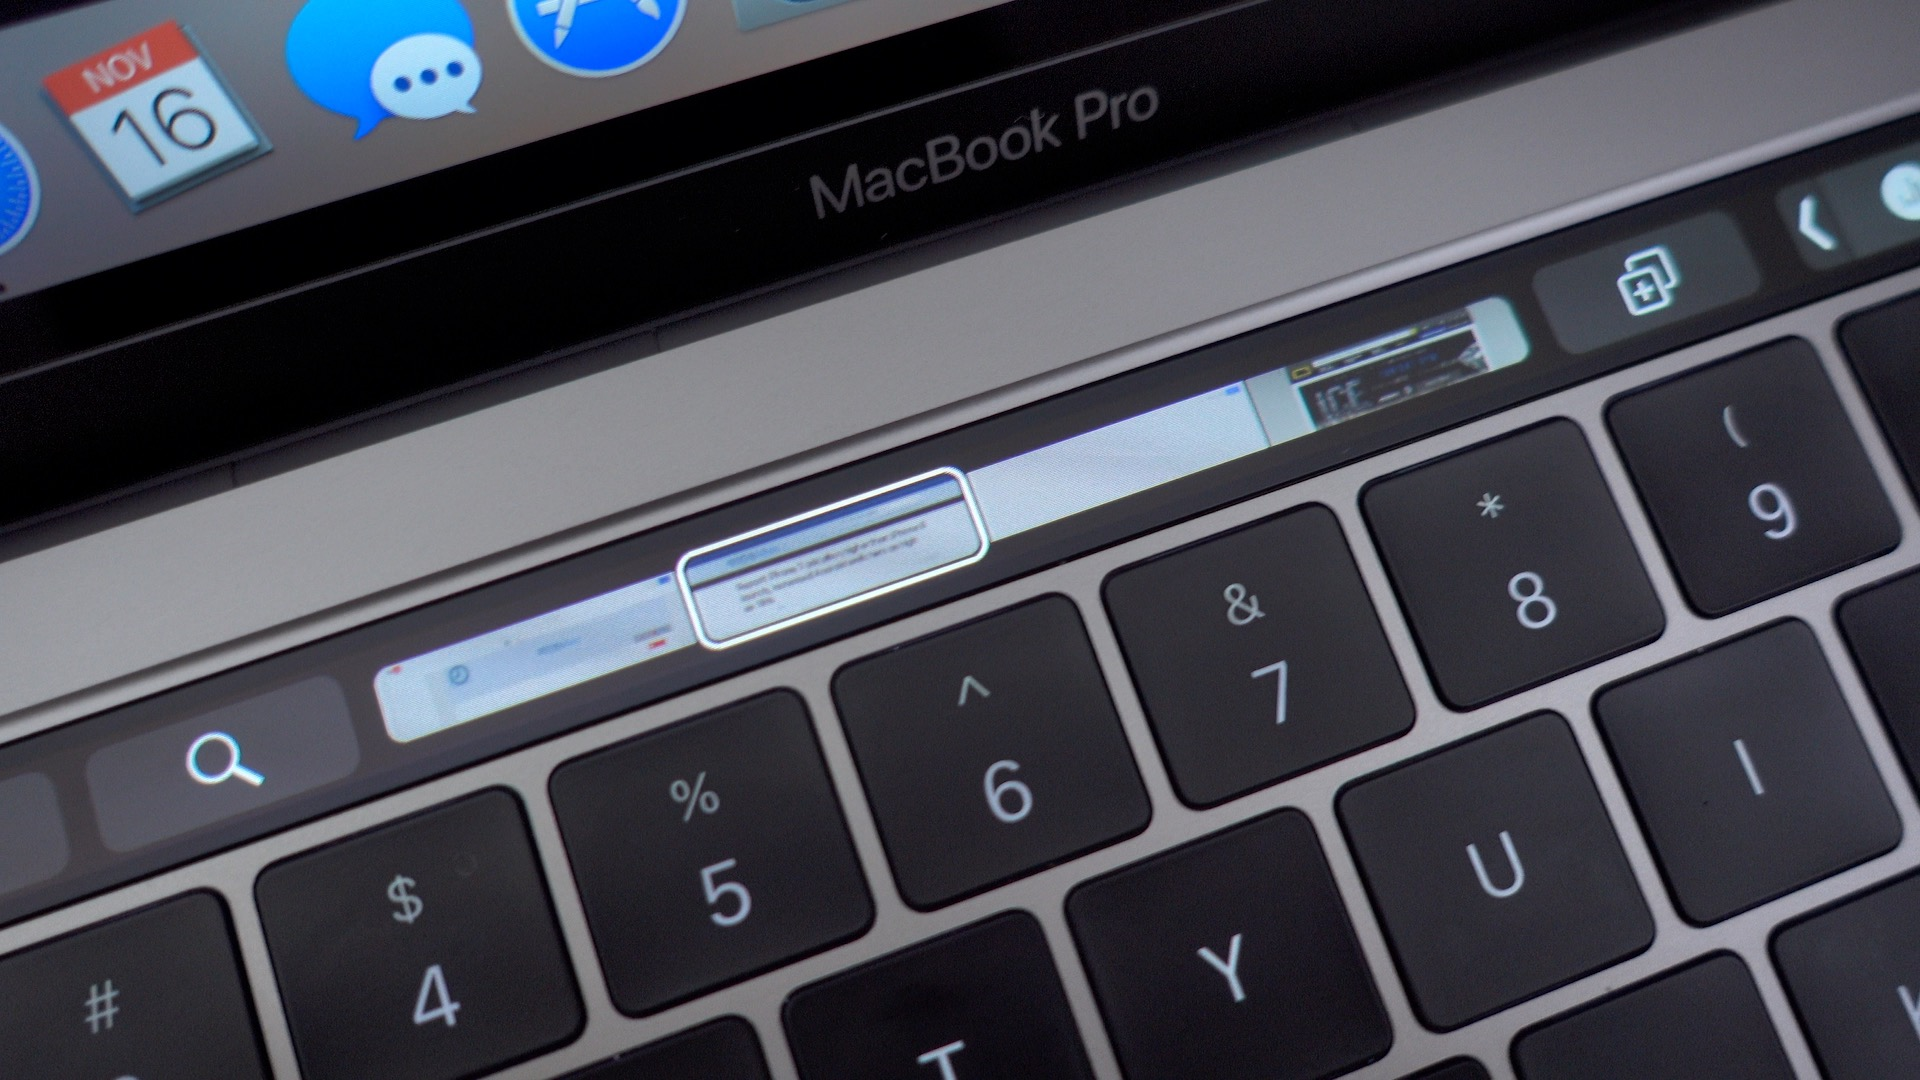 safari-macbook-pro-touch-bar